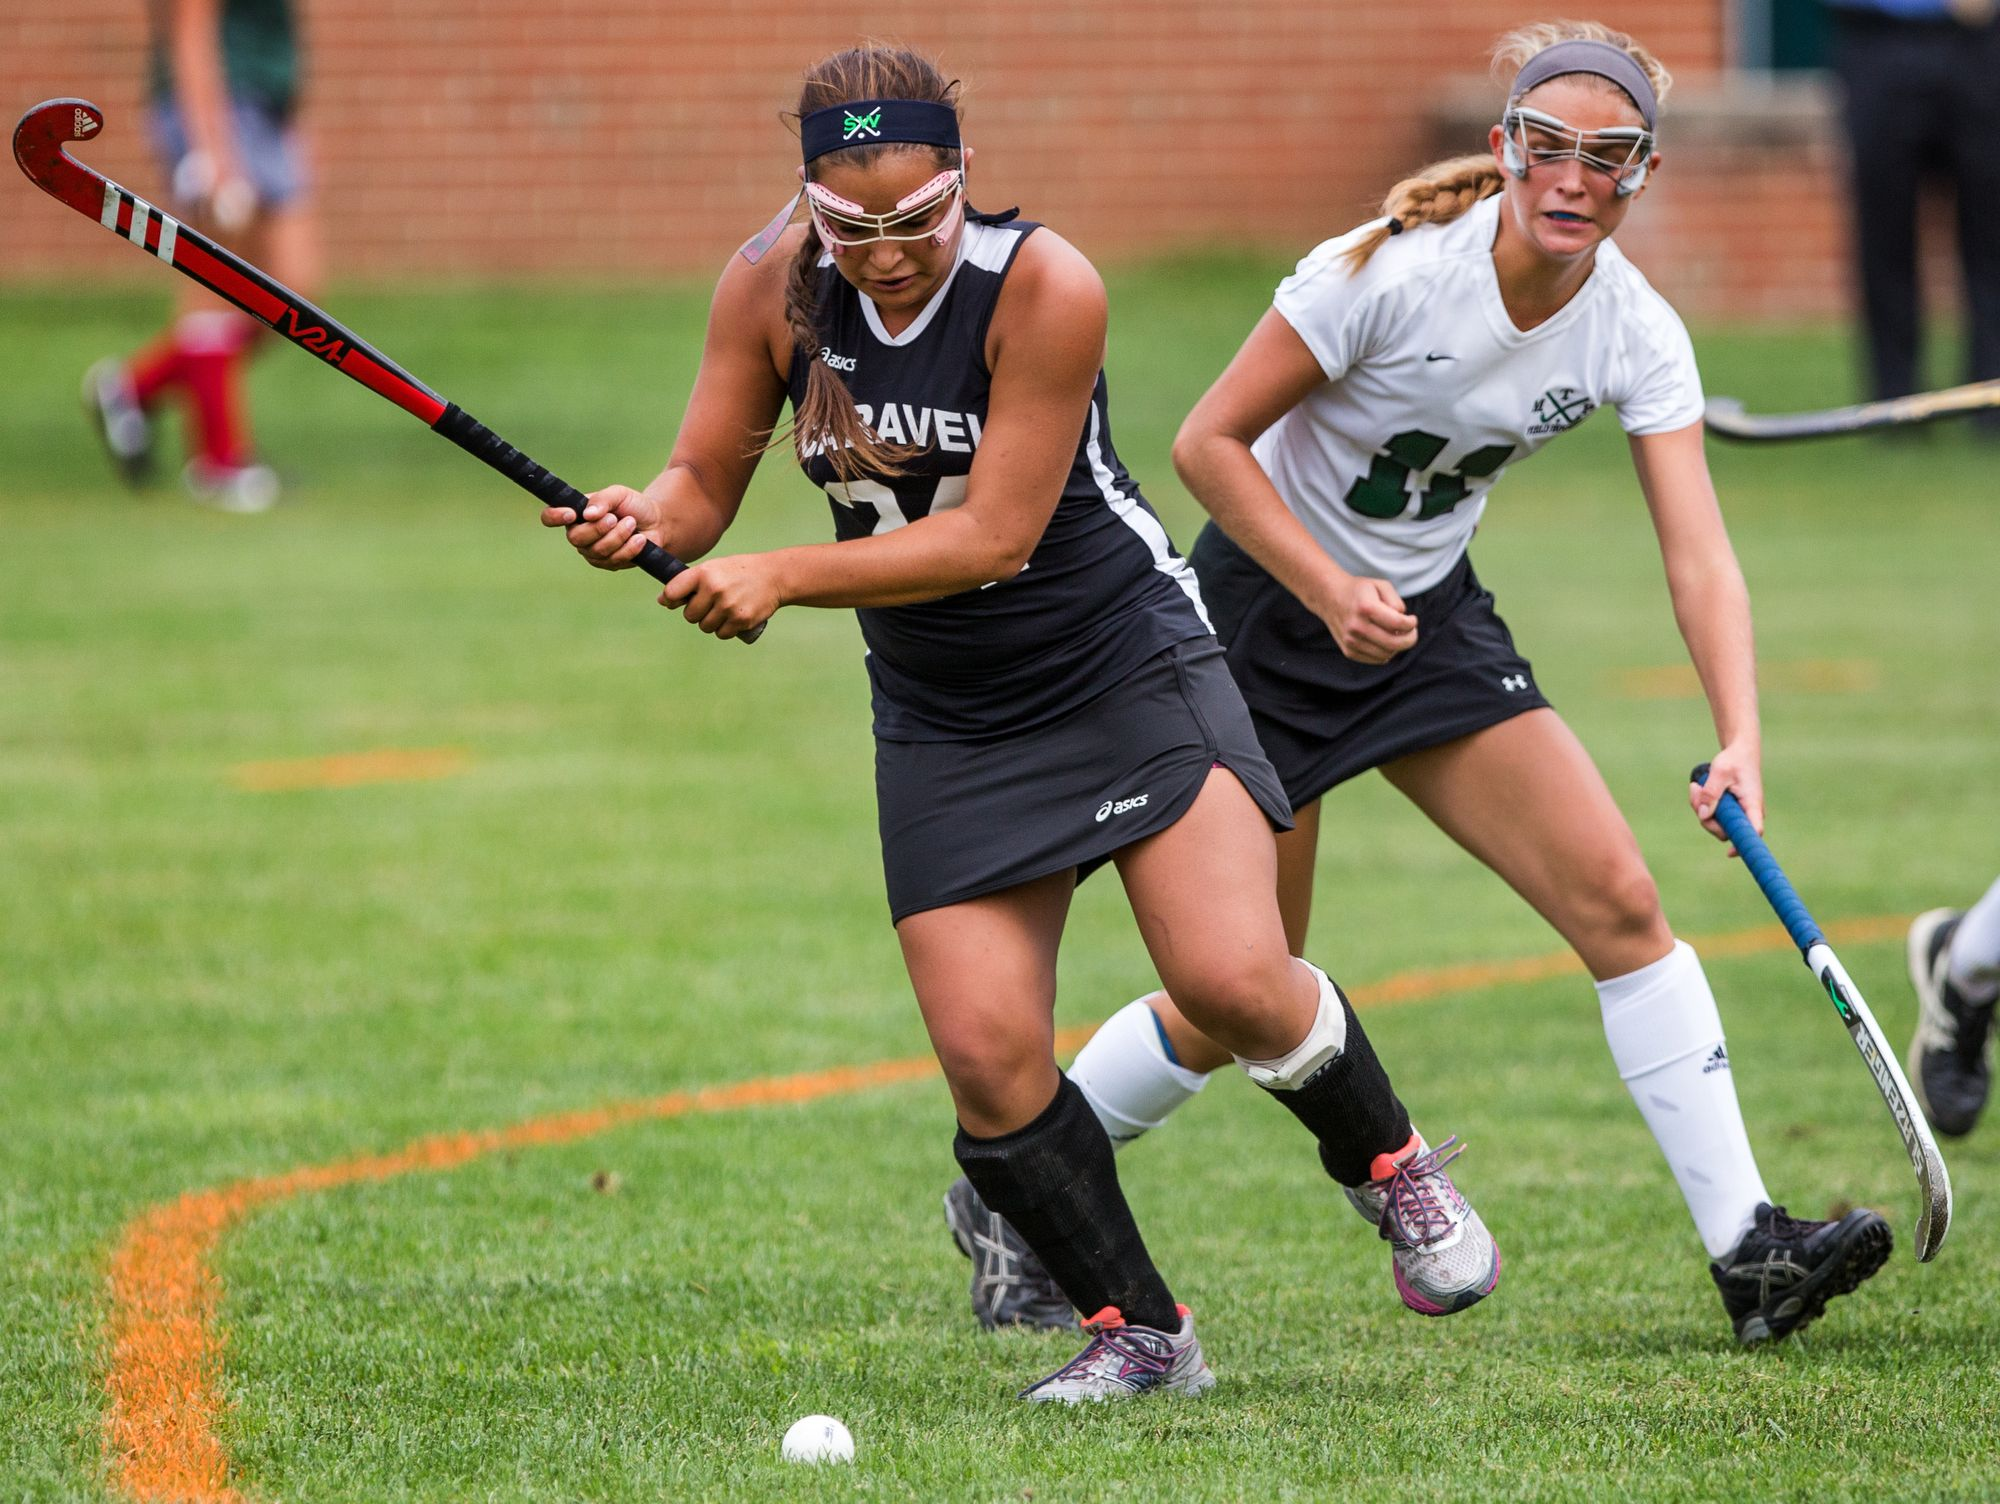 Caravel's Olivia Duarte (left), seen here against Mount Pleasant, scored two goals as the Buccaneers defeated William Penn 3-0 on Tuesday.